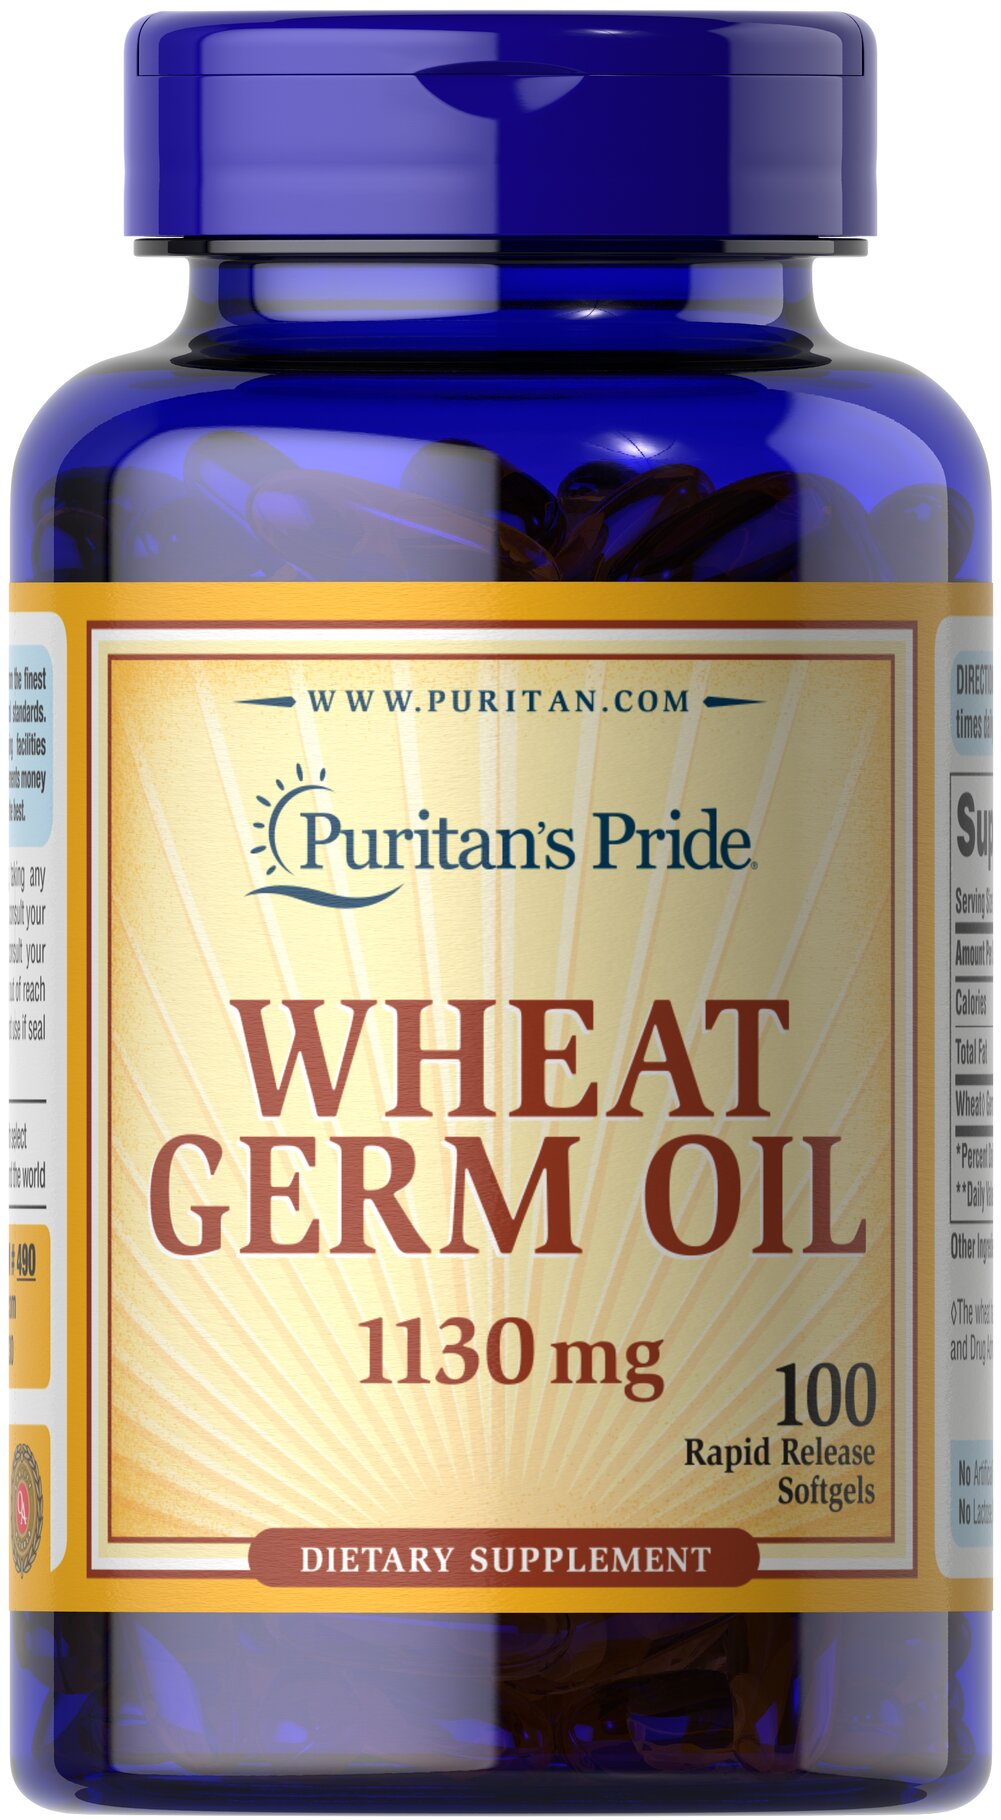 Wheat Germ Oil 1130 mg <p>Wheat Germ Oil is drawn from the heart of the finest wheat embryo by a refined cold pressing process.  The germ of wheat is a rich source of vitamin E, B Complex, plus protein factors.  Each softgel contains (1130 mg) Wheat Germ Oil.</p> 100 Softgels 1130 mg $18.99